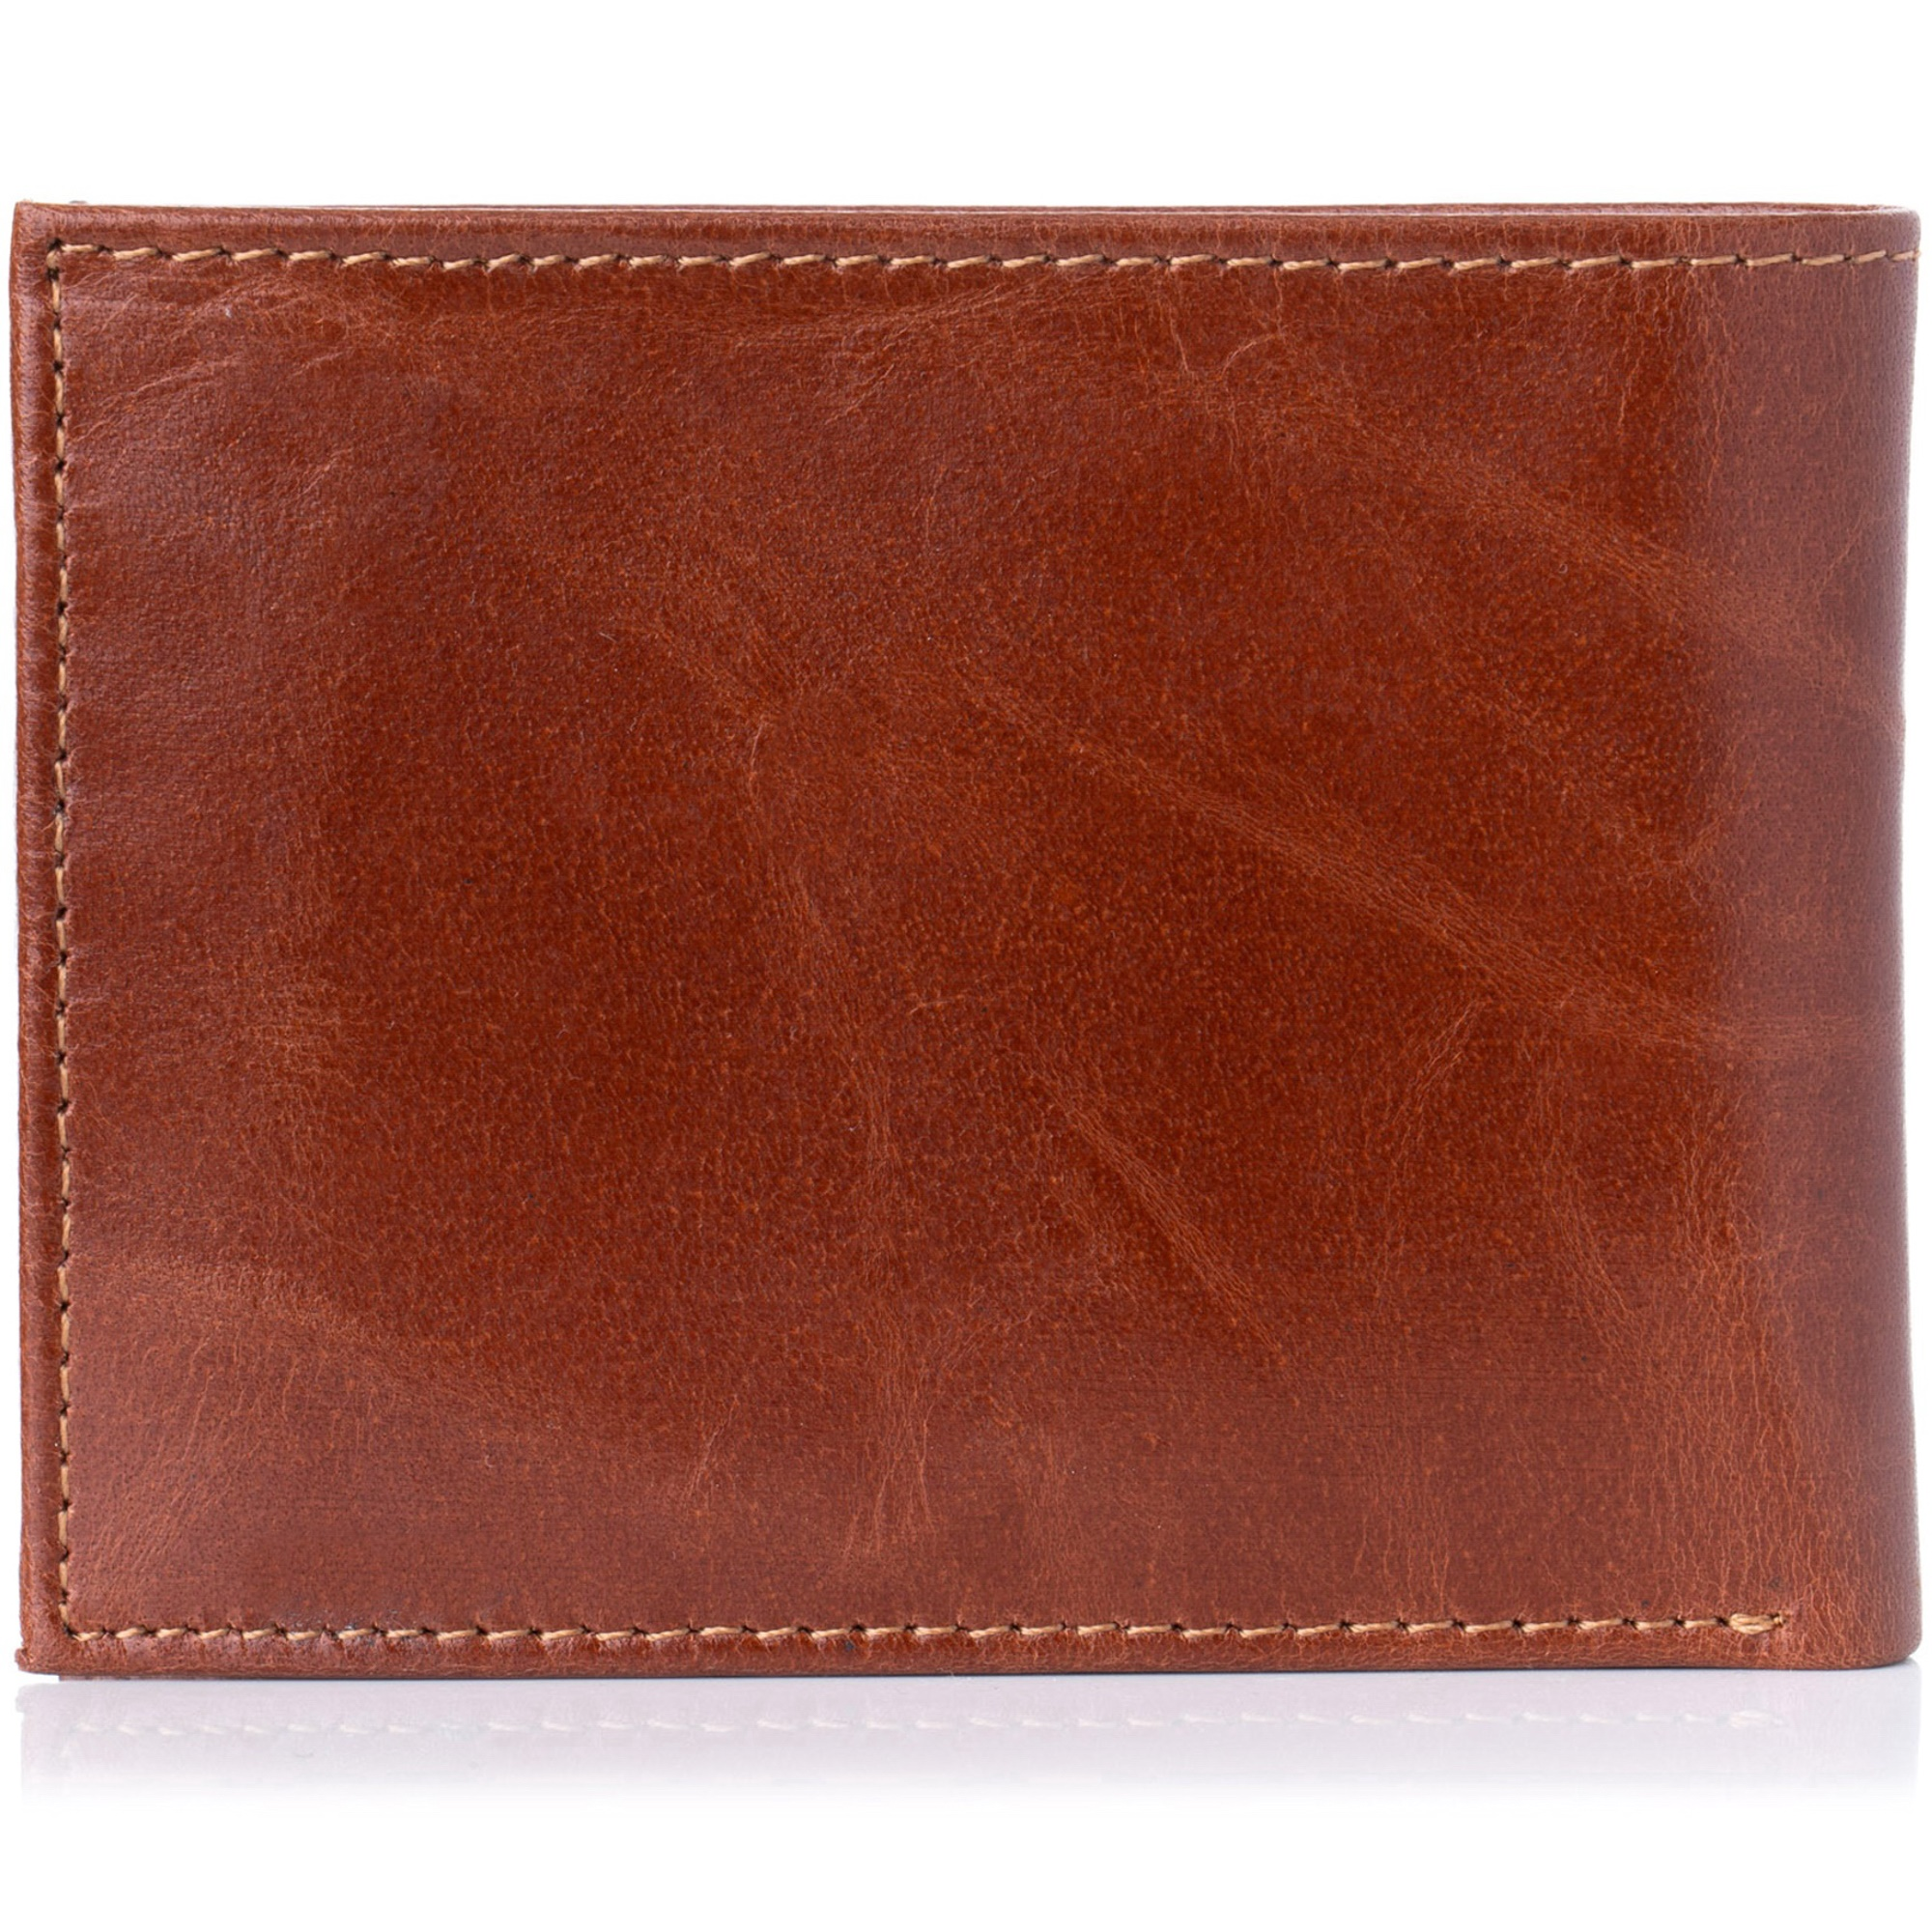 Alpine-Swiss-RFID-Blocking-Mens-Leather-Bifold-Wallet-Removable-ID-Card-Passcase thumbnail 26